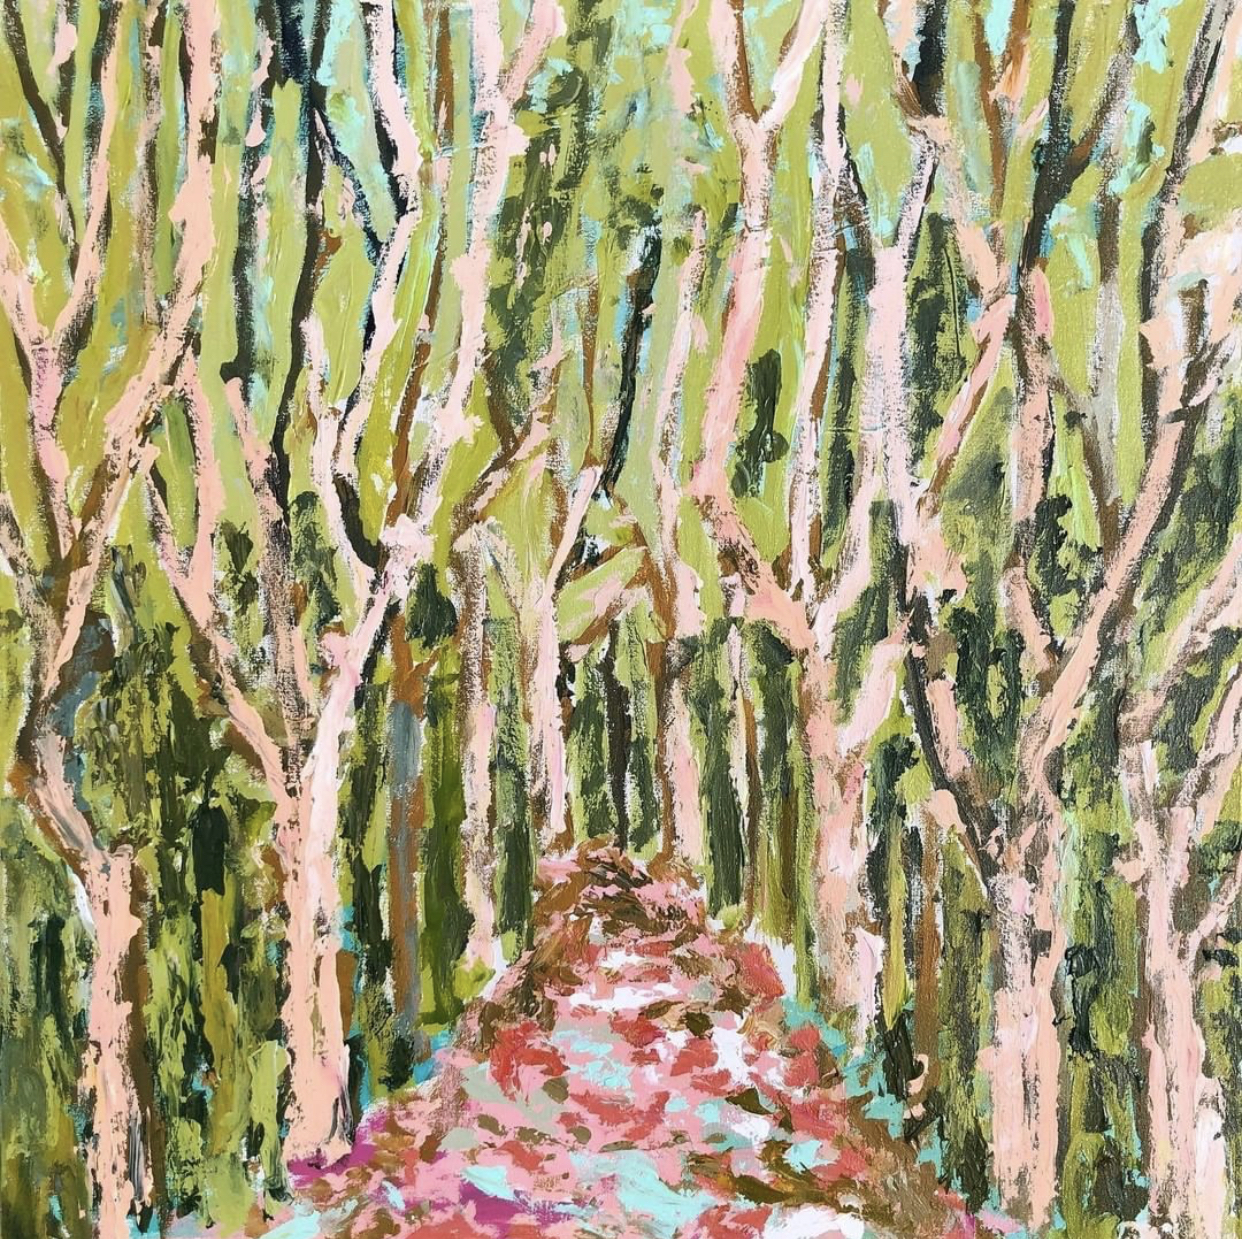 TREES OF PROVENCE 1 - 30x30